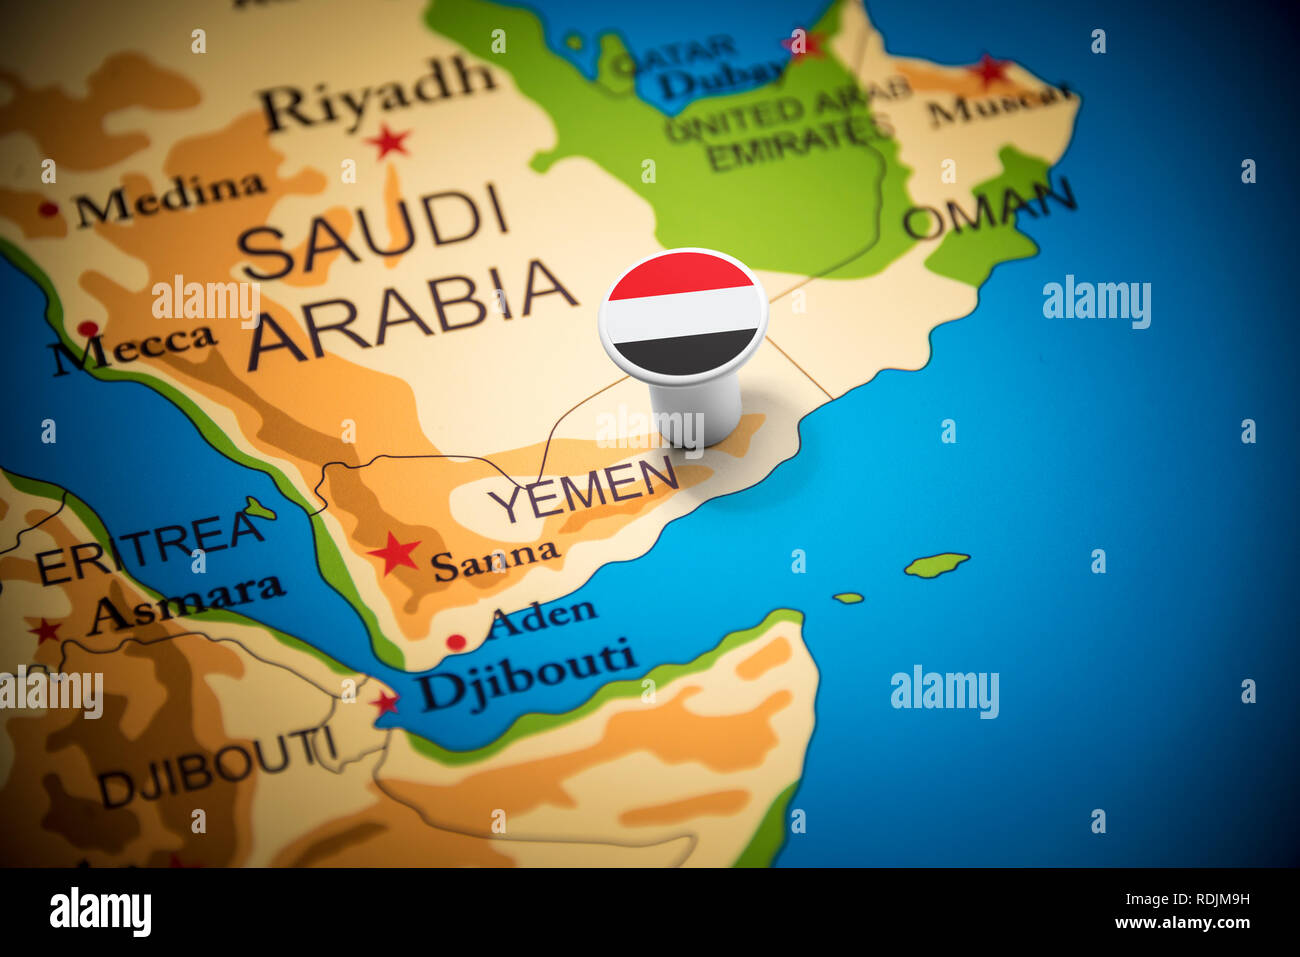 Yemeni marked with a flag on the map - Stock Image